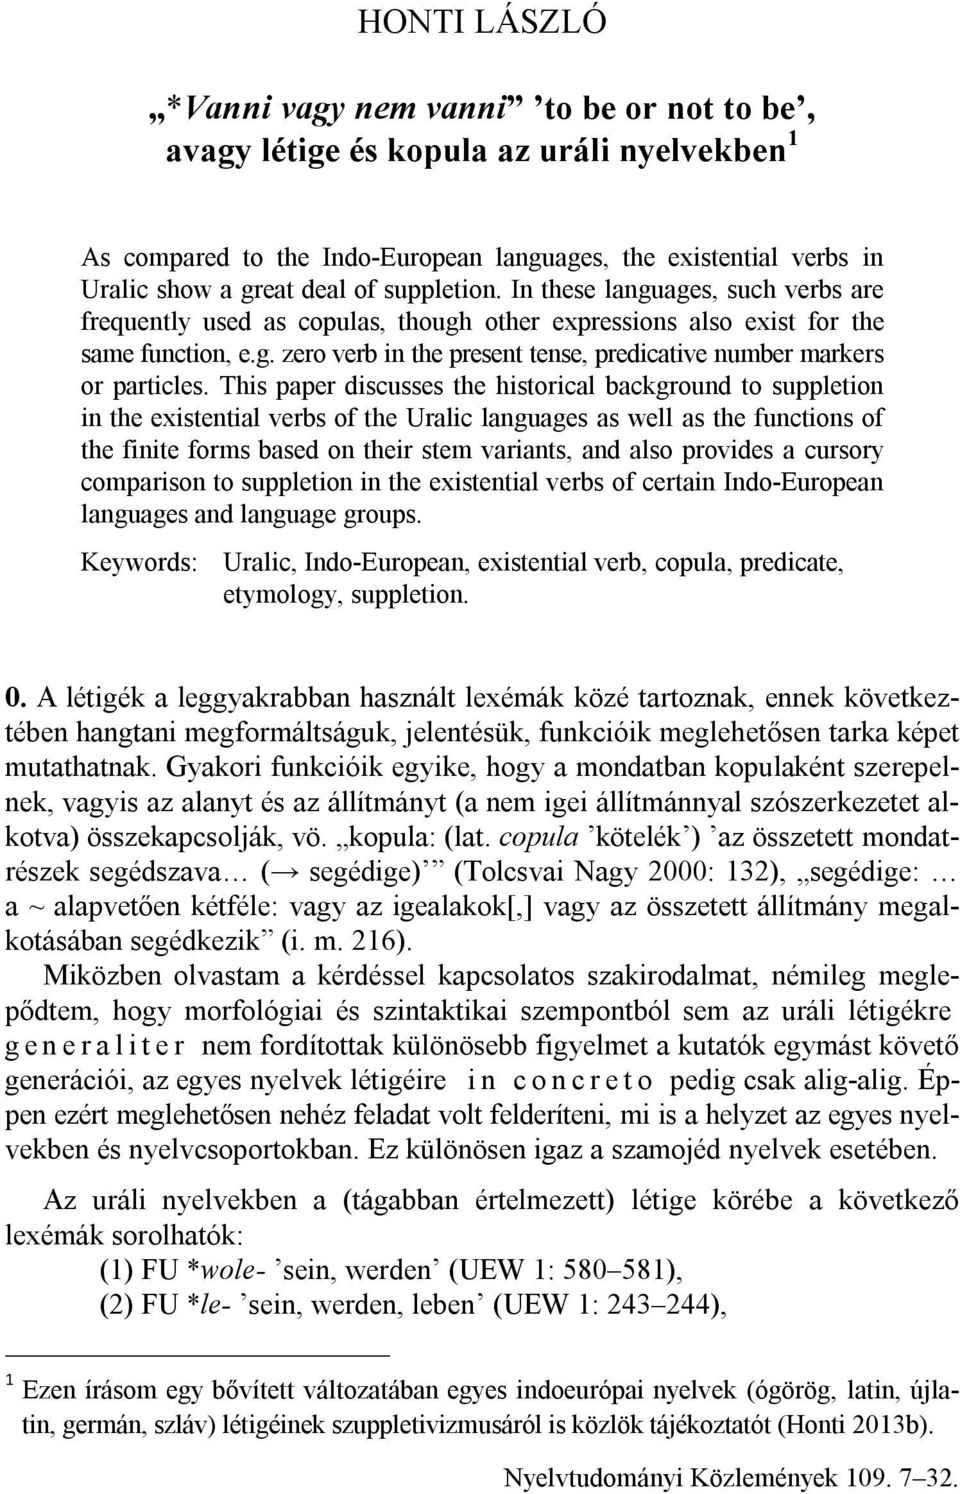 This paper discusses the historical background to suppletion in the existential verbs of the Uralic languages as well as the functions of the finite forms based on their stem variants, and also